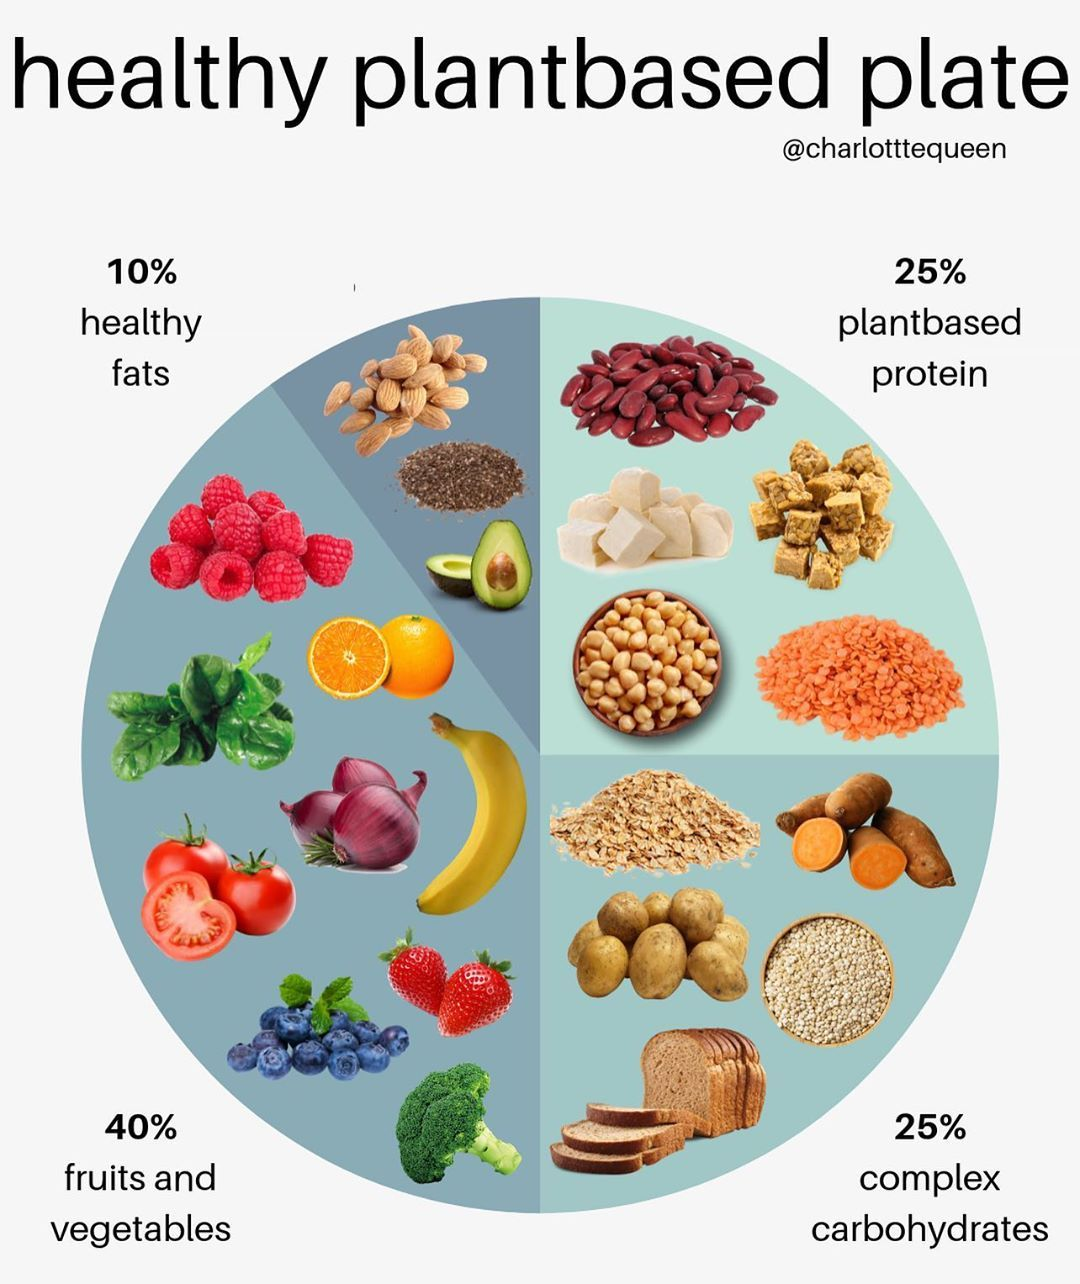 Balanced plantbased plate !! Here is a guideline to how I typically go about 'building' my plates - although let's be real I will add way more than 10% fats if it's avocado we're talking about here 🥑 Not every meal you have has to be be like this but it's a pretty good guideline to help get a variety of micro and macronutrients in your diet! There should also be some room for more processed food outside of this if that's something you enjoy incorporating into your diet... I personally don't thi